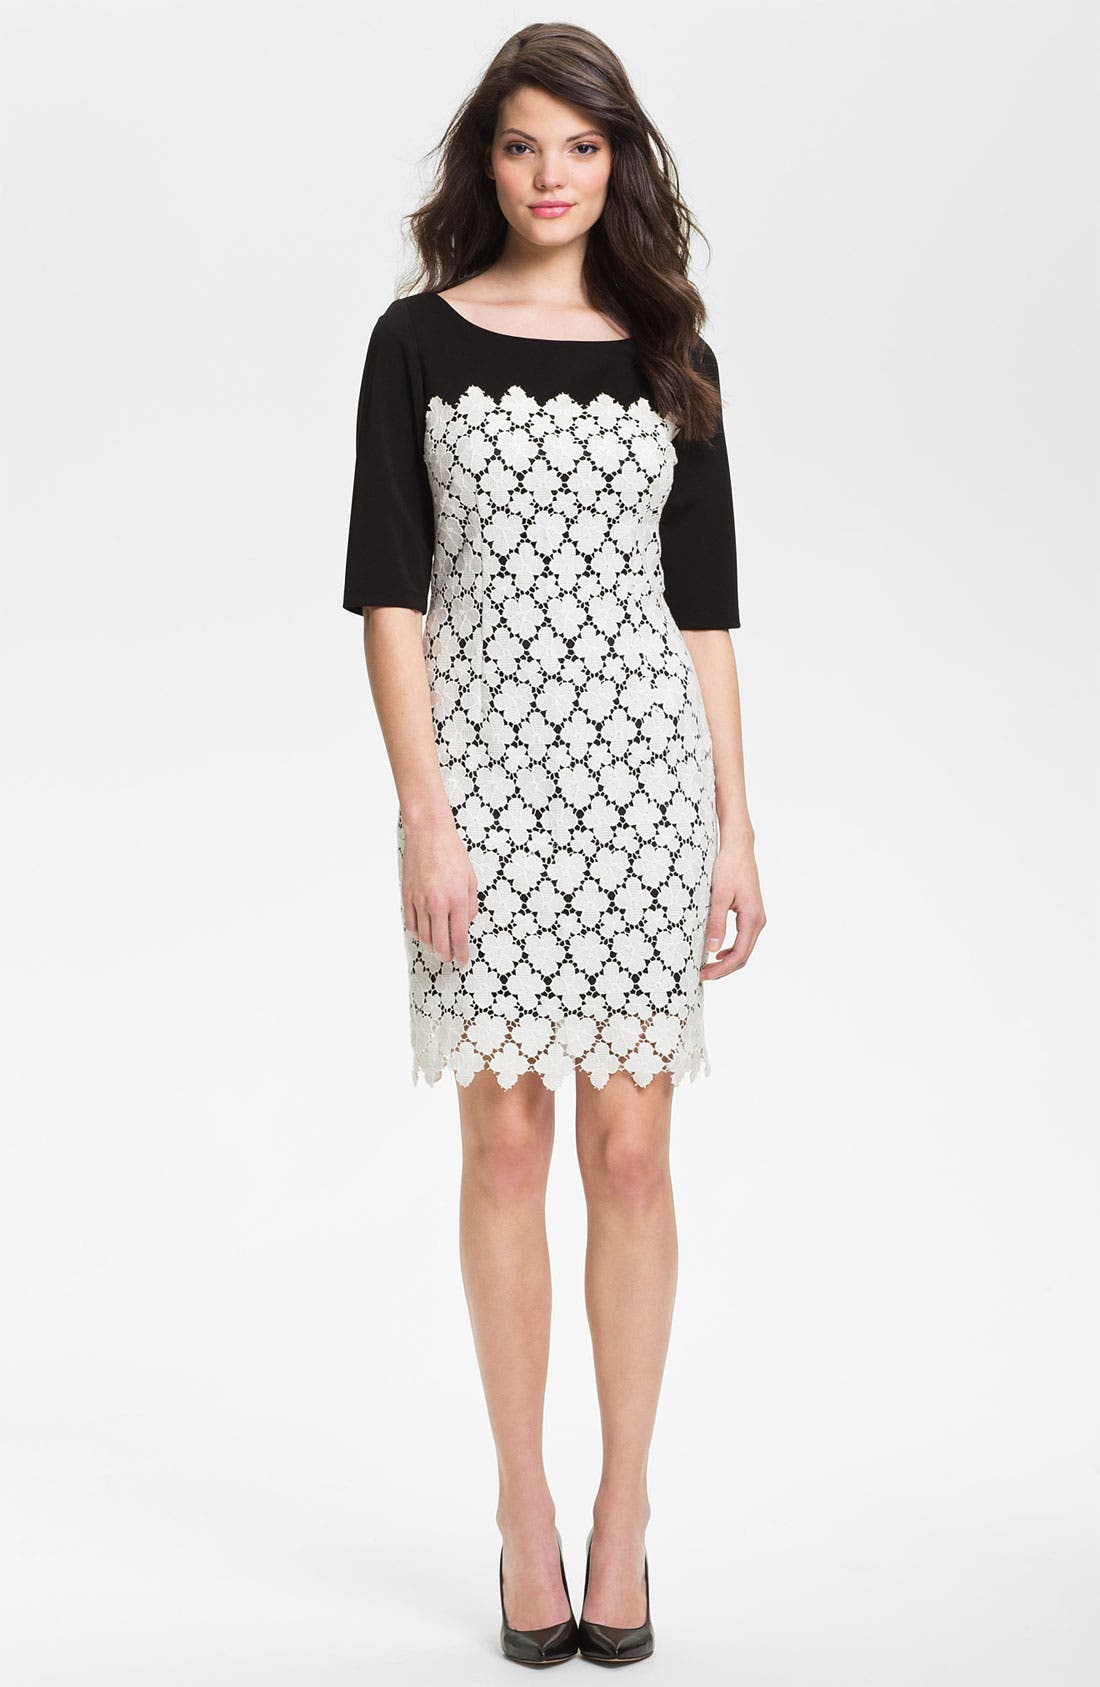 Main Image - Suzi Chin for Maggy Boutique Lace Overlay Sheath Dress